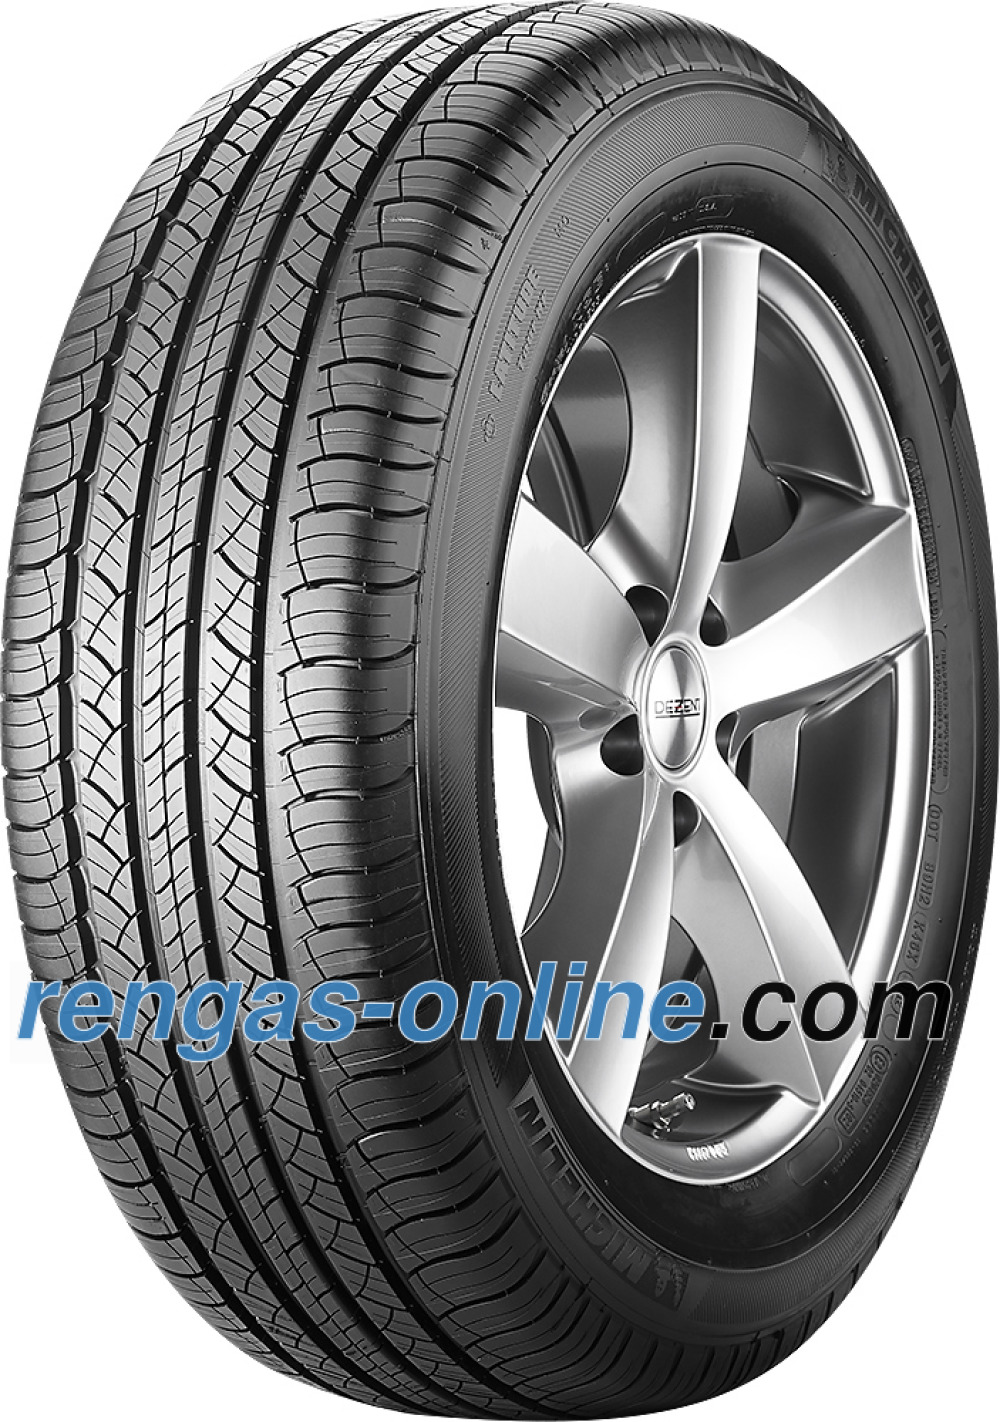 michelin-latitude-tour-hp-25555-r18-109v-xl-grnx-n1